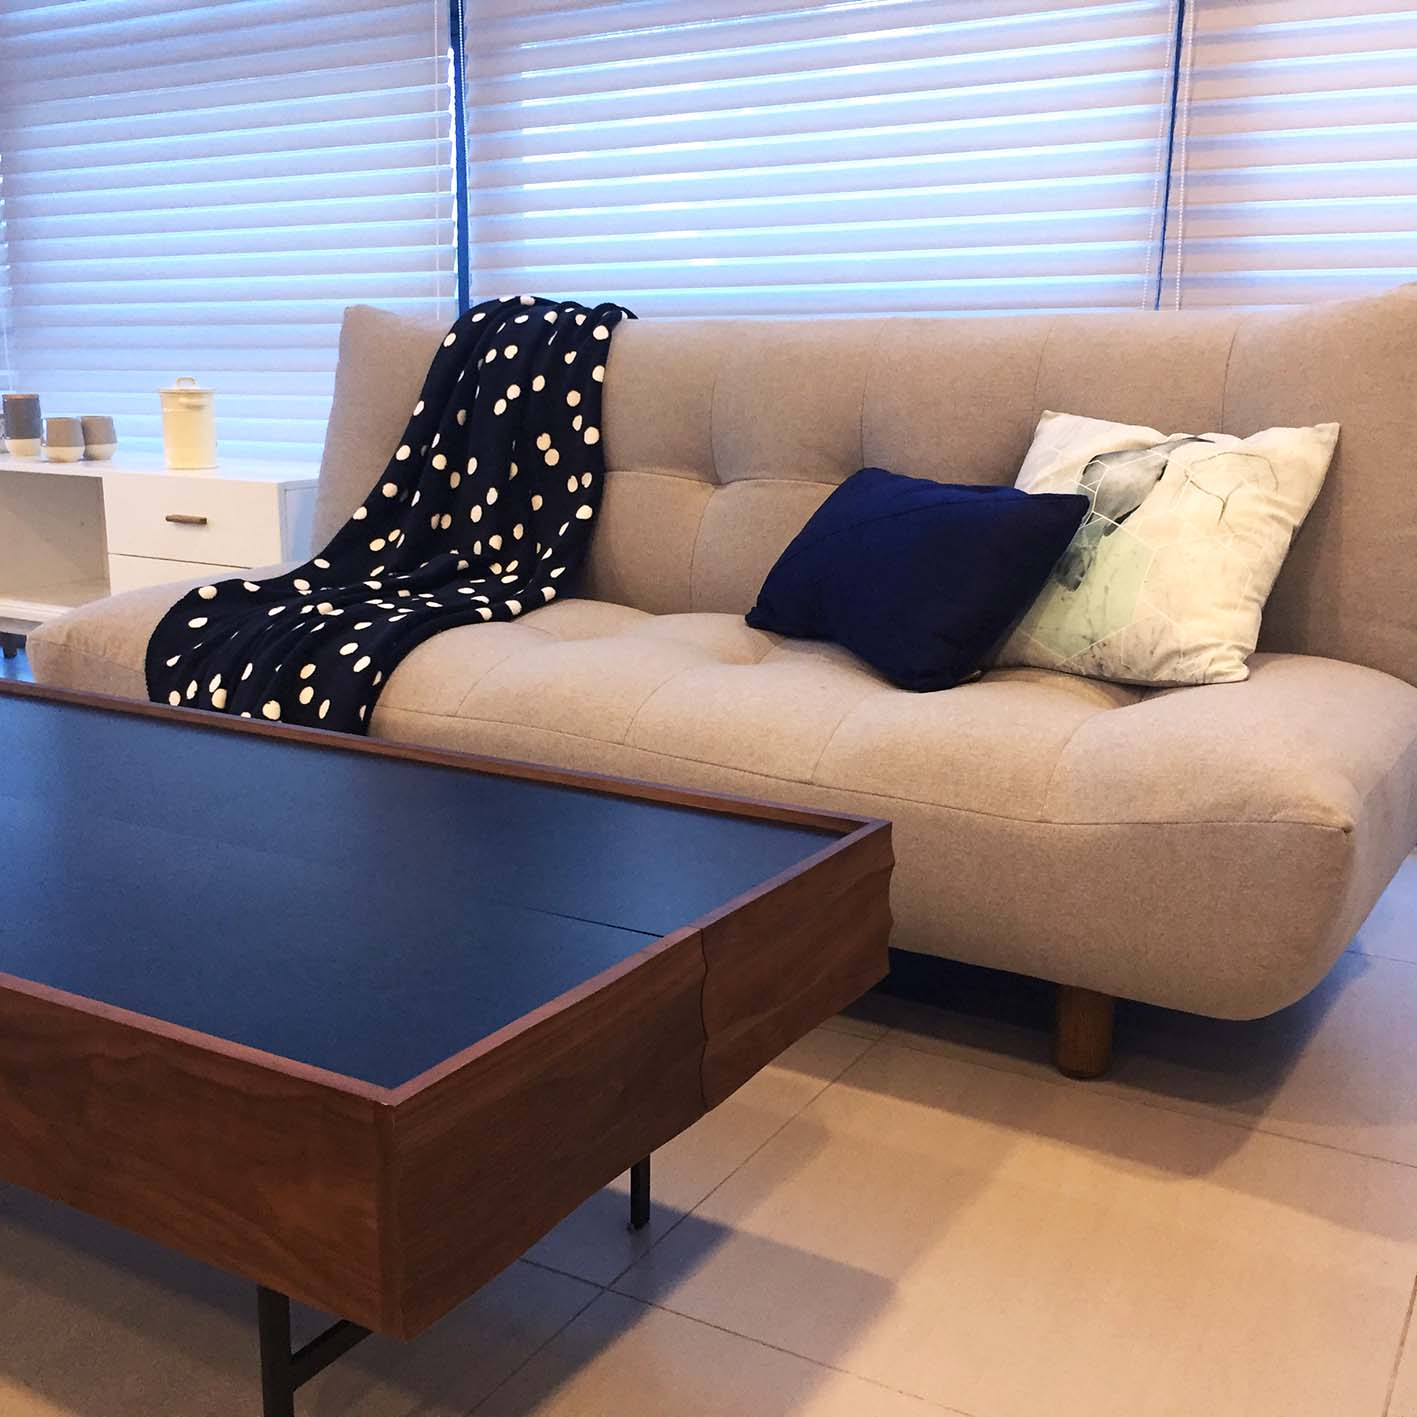 Top 3 Ideas For Picking The Ideal Sofa